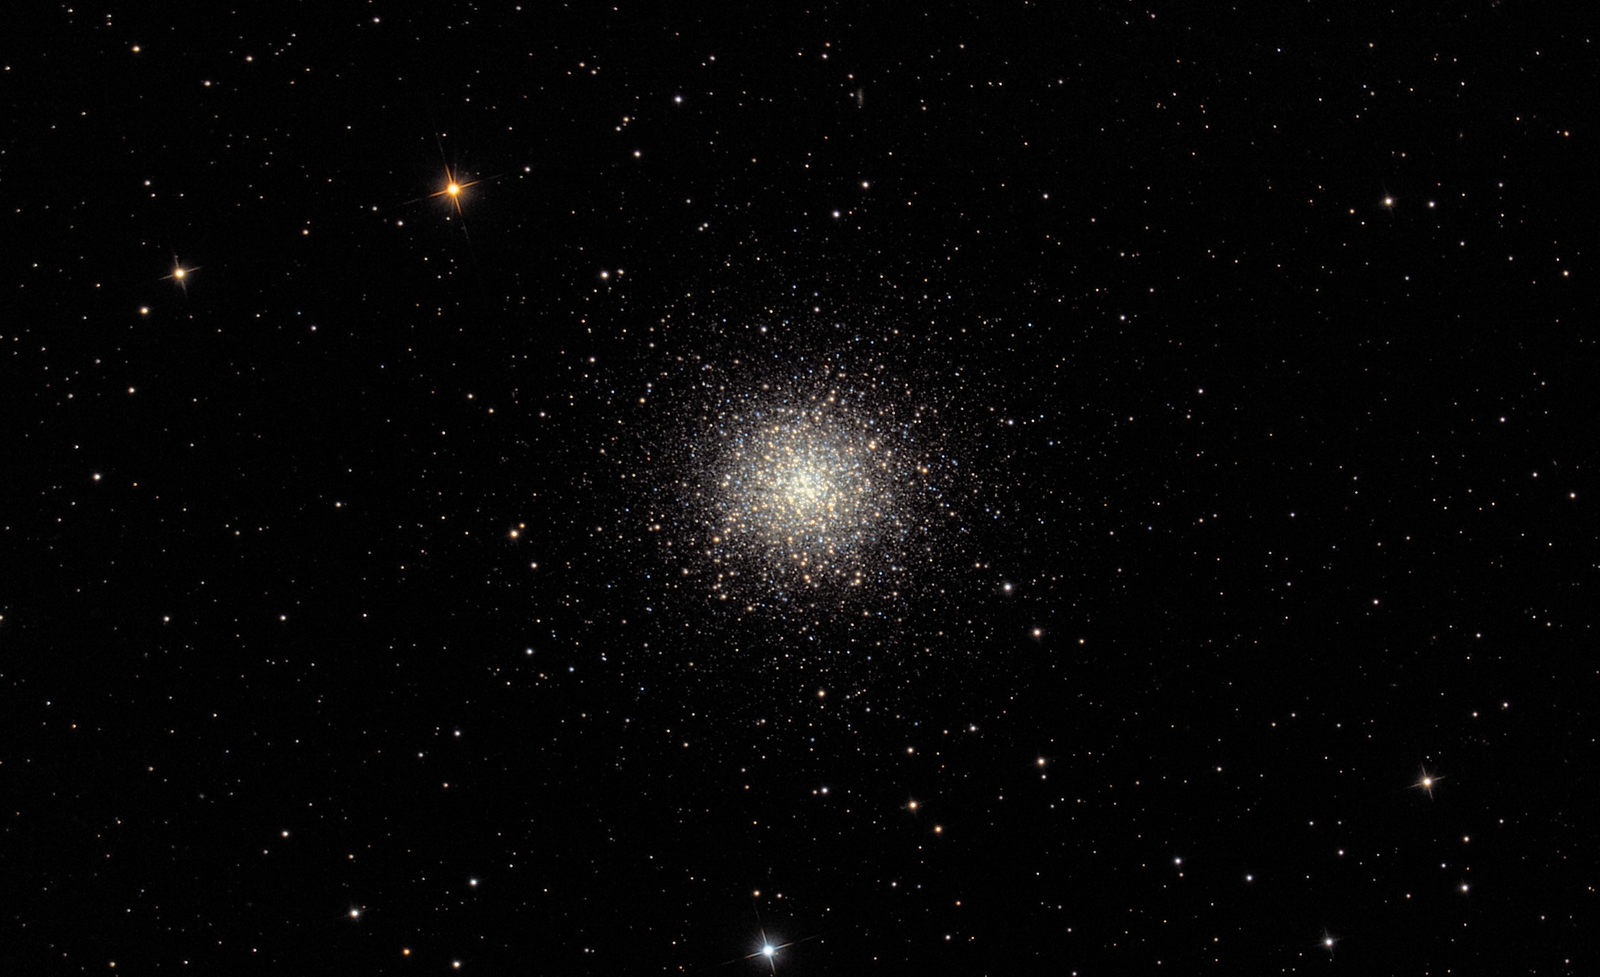 M13 OSC only photo taken by the elf